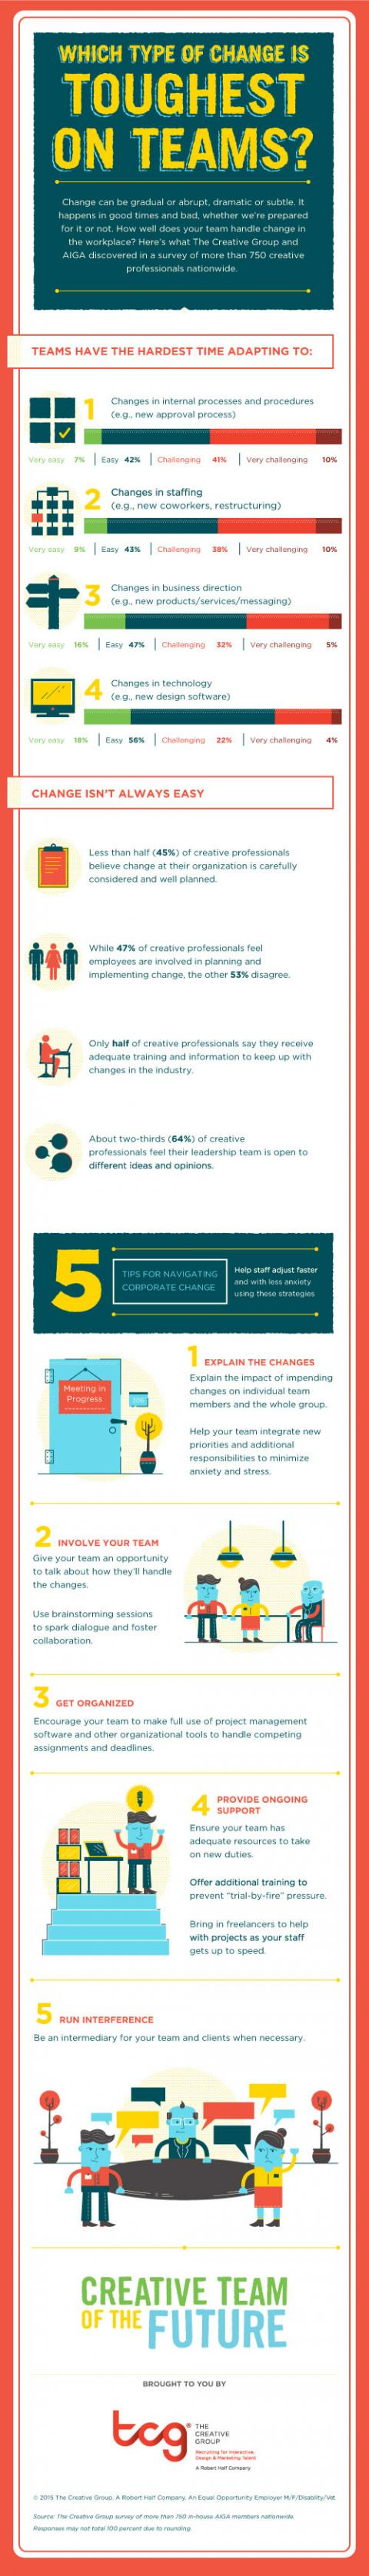 An infographic featuring the results of a survey from The Creative Group about how  teams manage change in the workplace